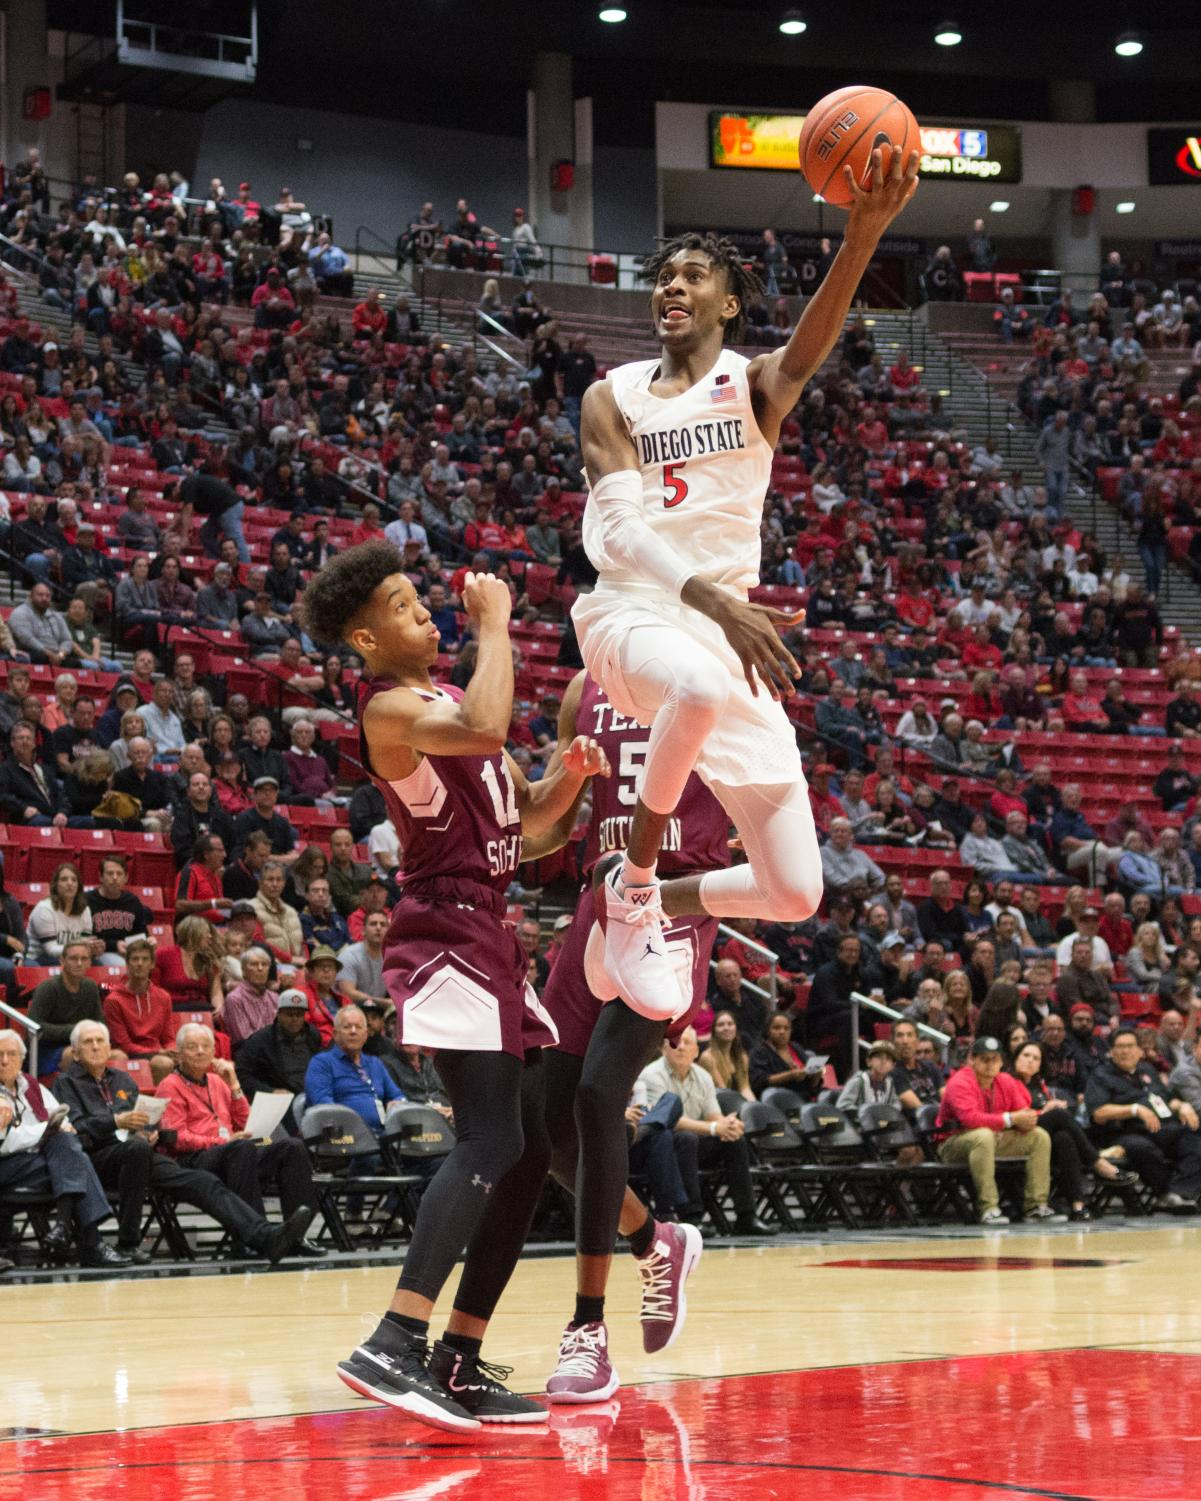 Redshirt sophomore forward Jalen McDaniels goes up for the layup against Texas Southern on Nov. 14 at Viejas Arena.